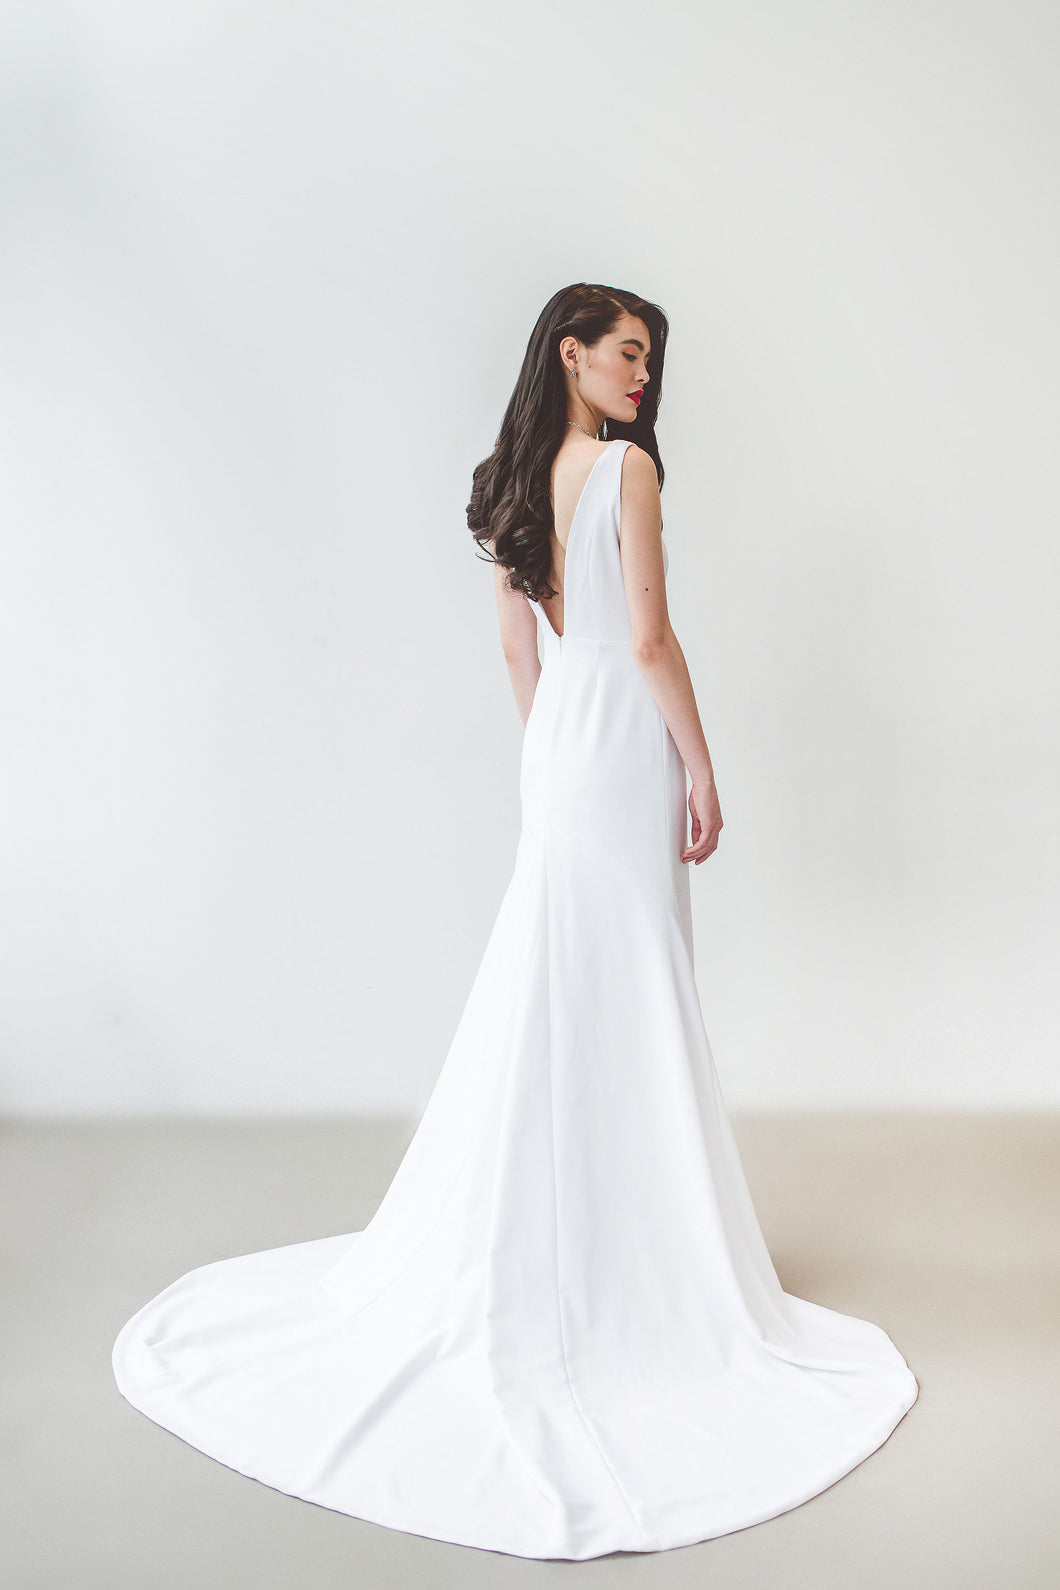 A unique backless minimalist wedding dress with long train handmade in Vancouver.